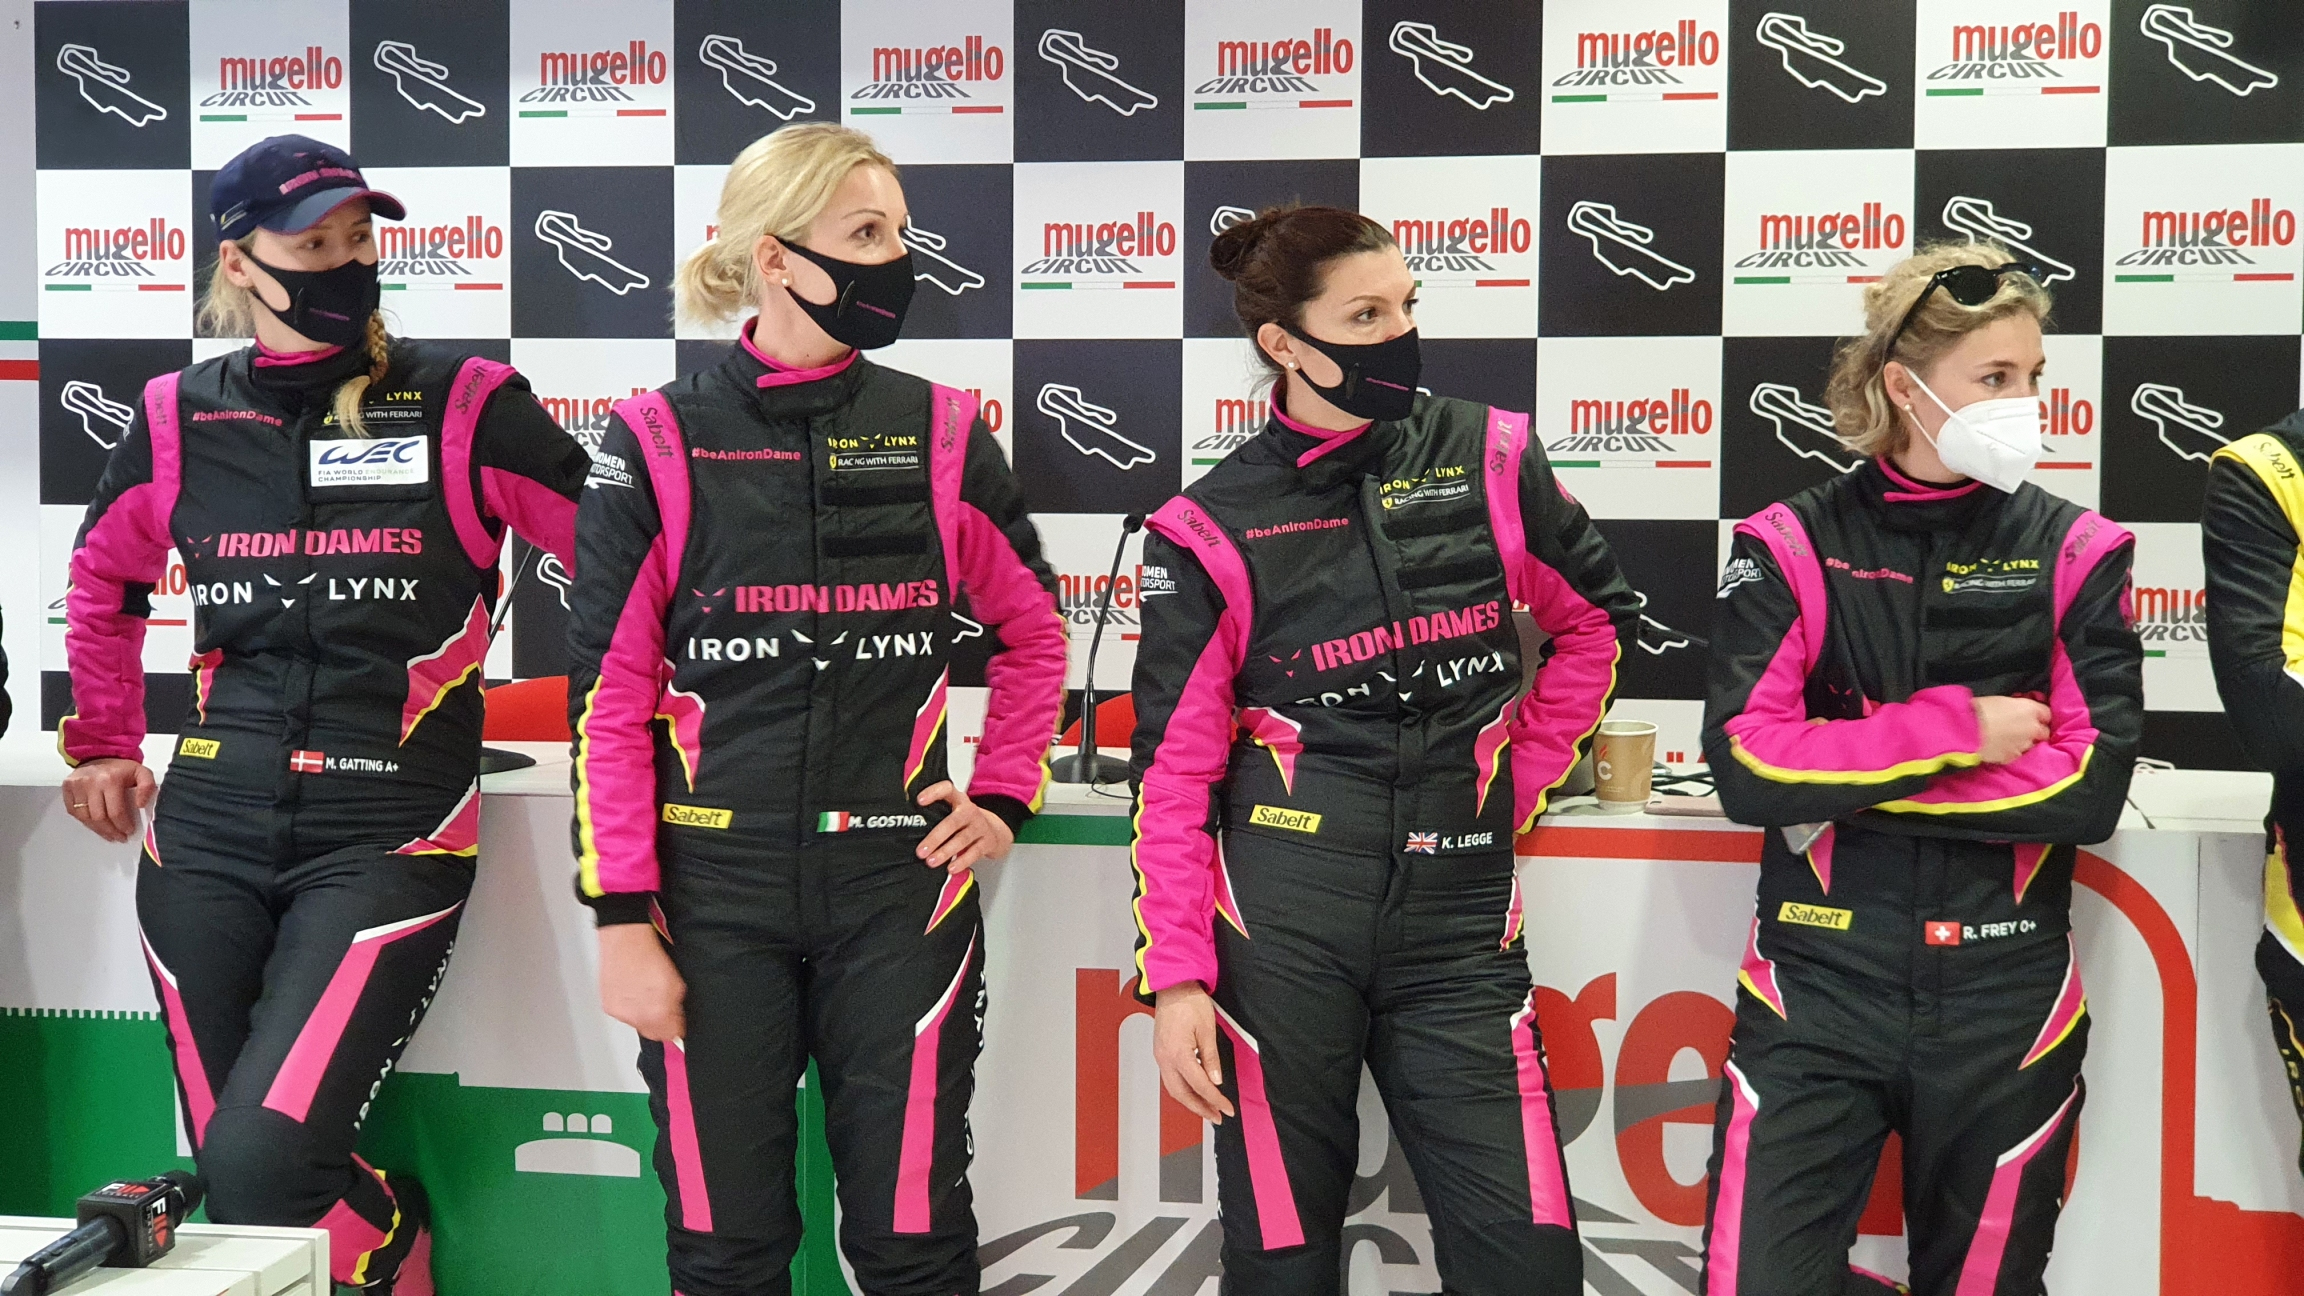 Four women wear black and pink race tracksuits.